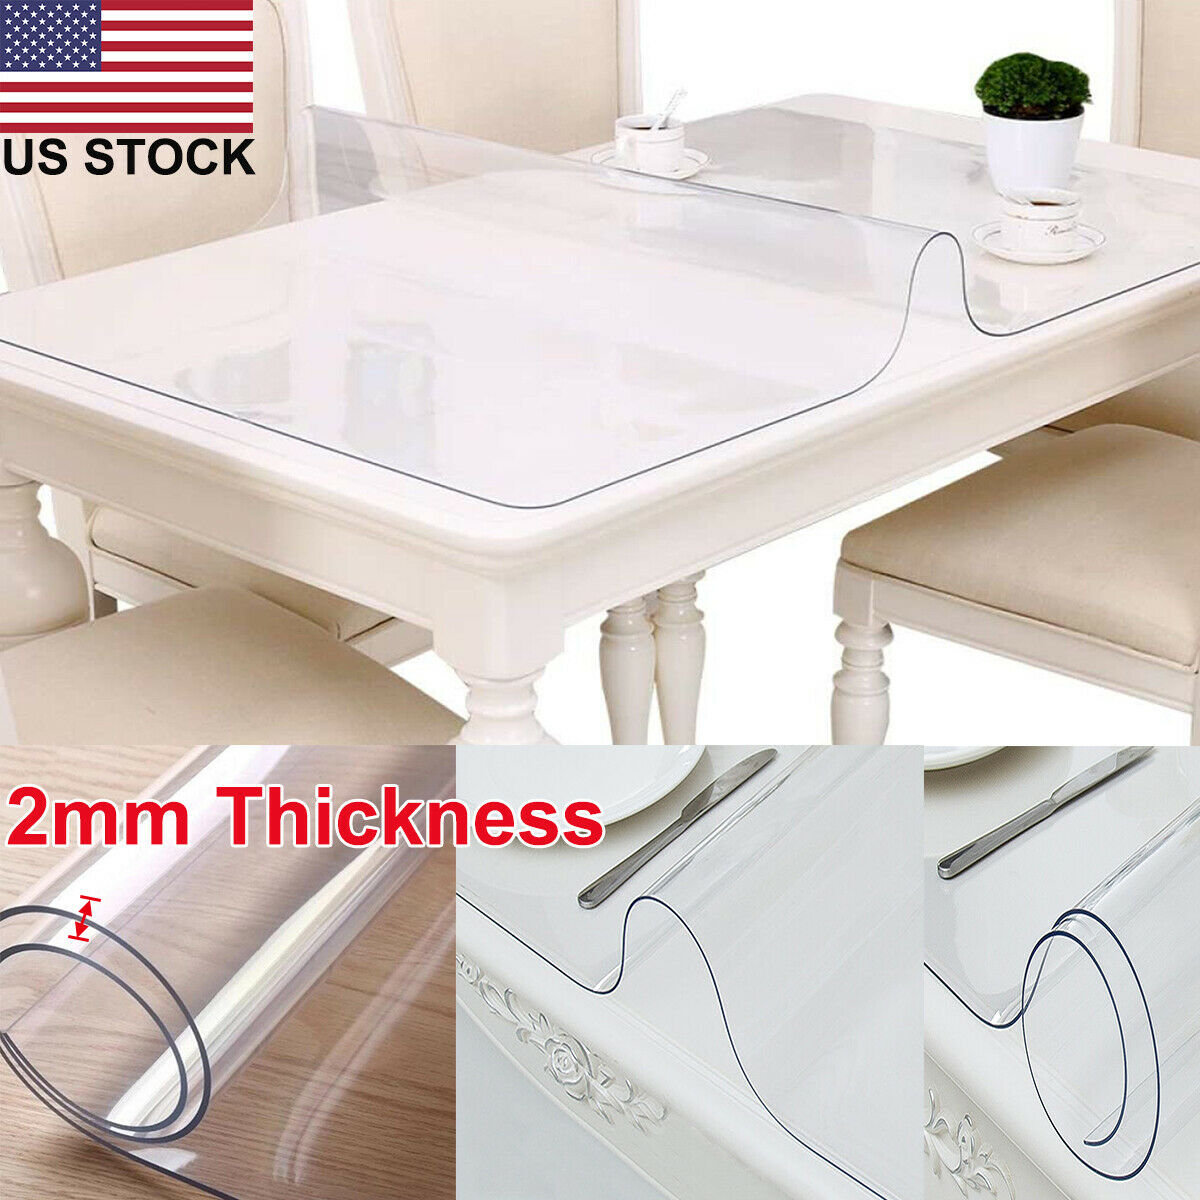 LovePads 2mm Thick 38 x 78 Inches Clear Dining Room Table Protector Kitchen Wood Grain Vinyl Tablecloth Cover Rectangular Non-Slip Plastic Table Protective Pads